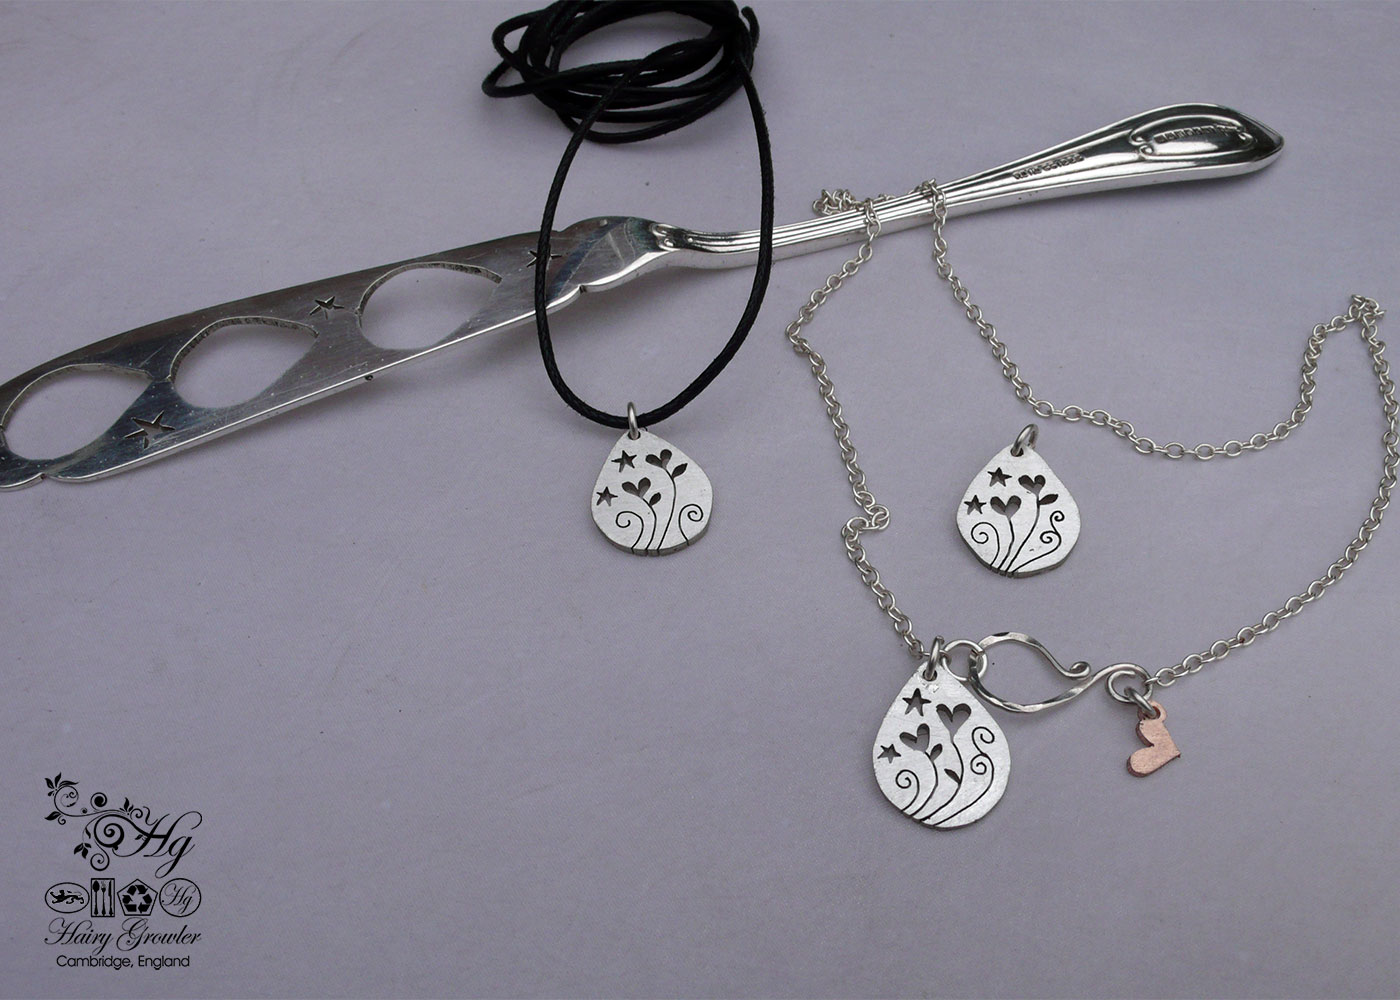 Recycled cutlery Handcrafted and recycled fish knife love grows necklaces